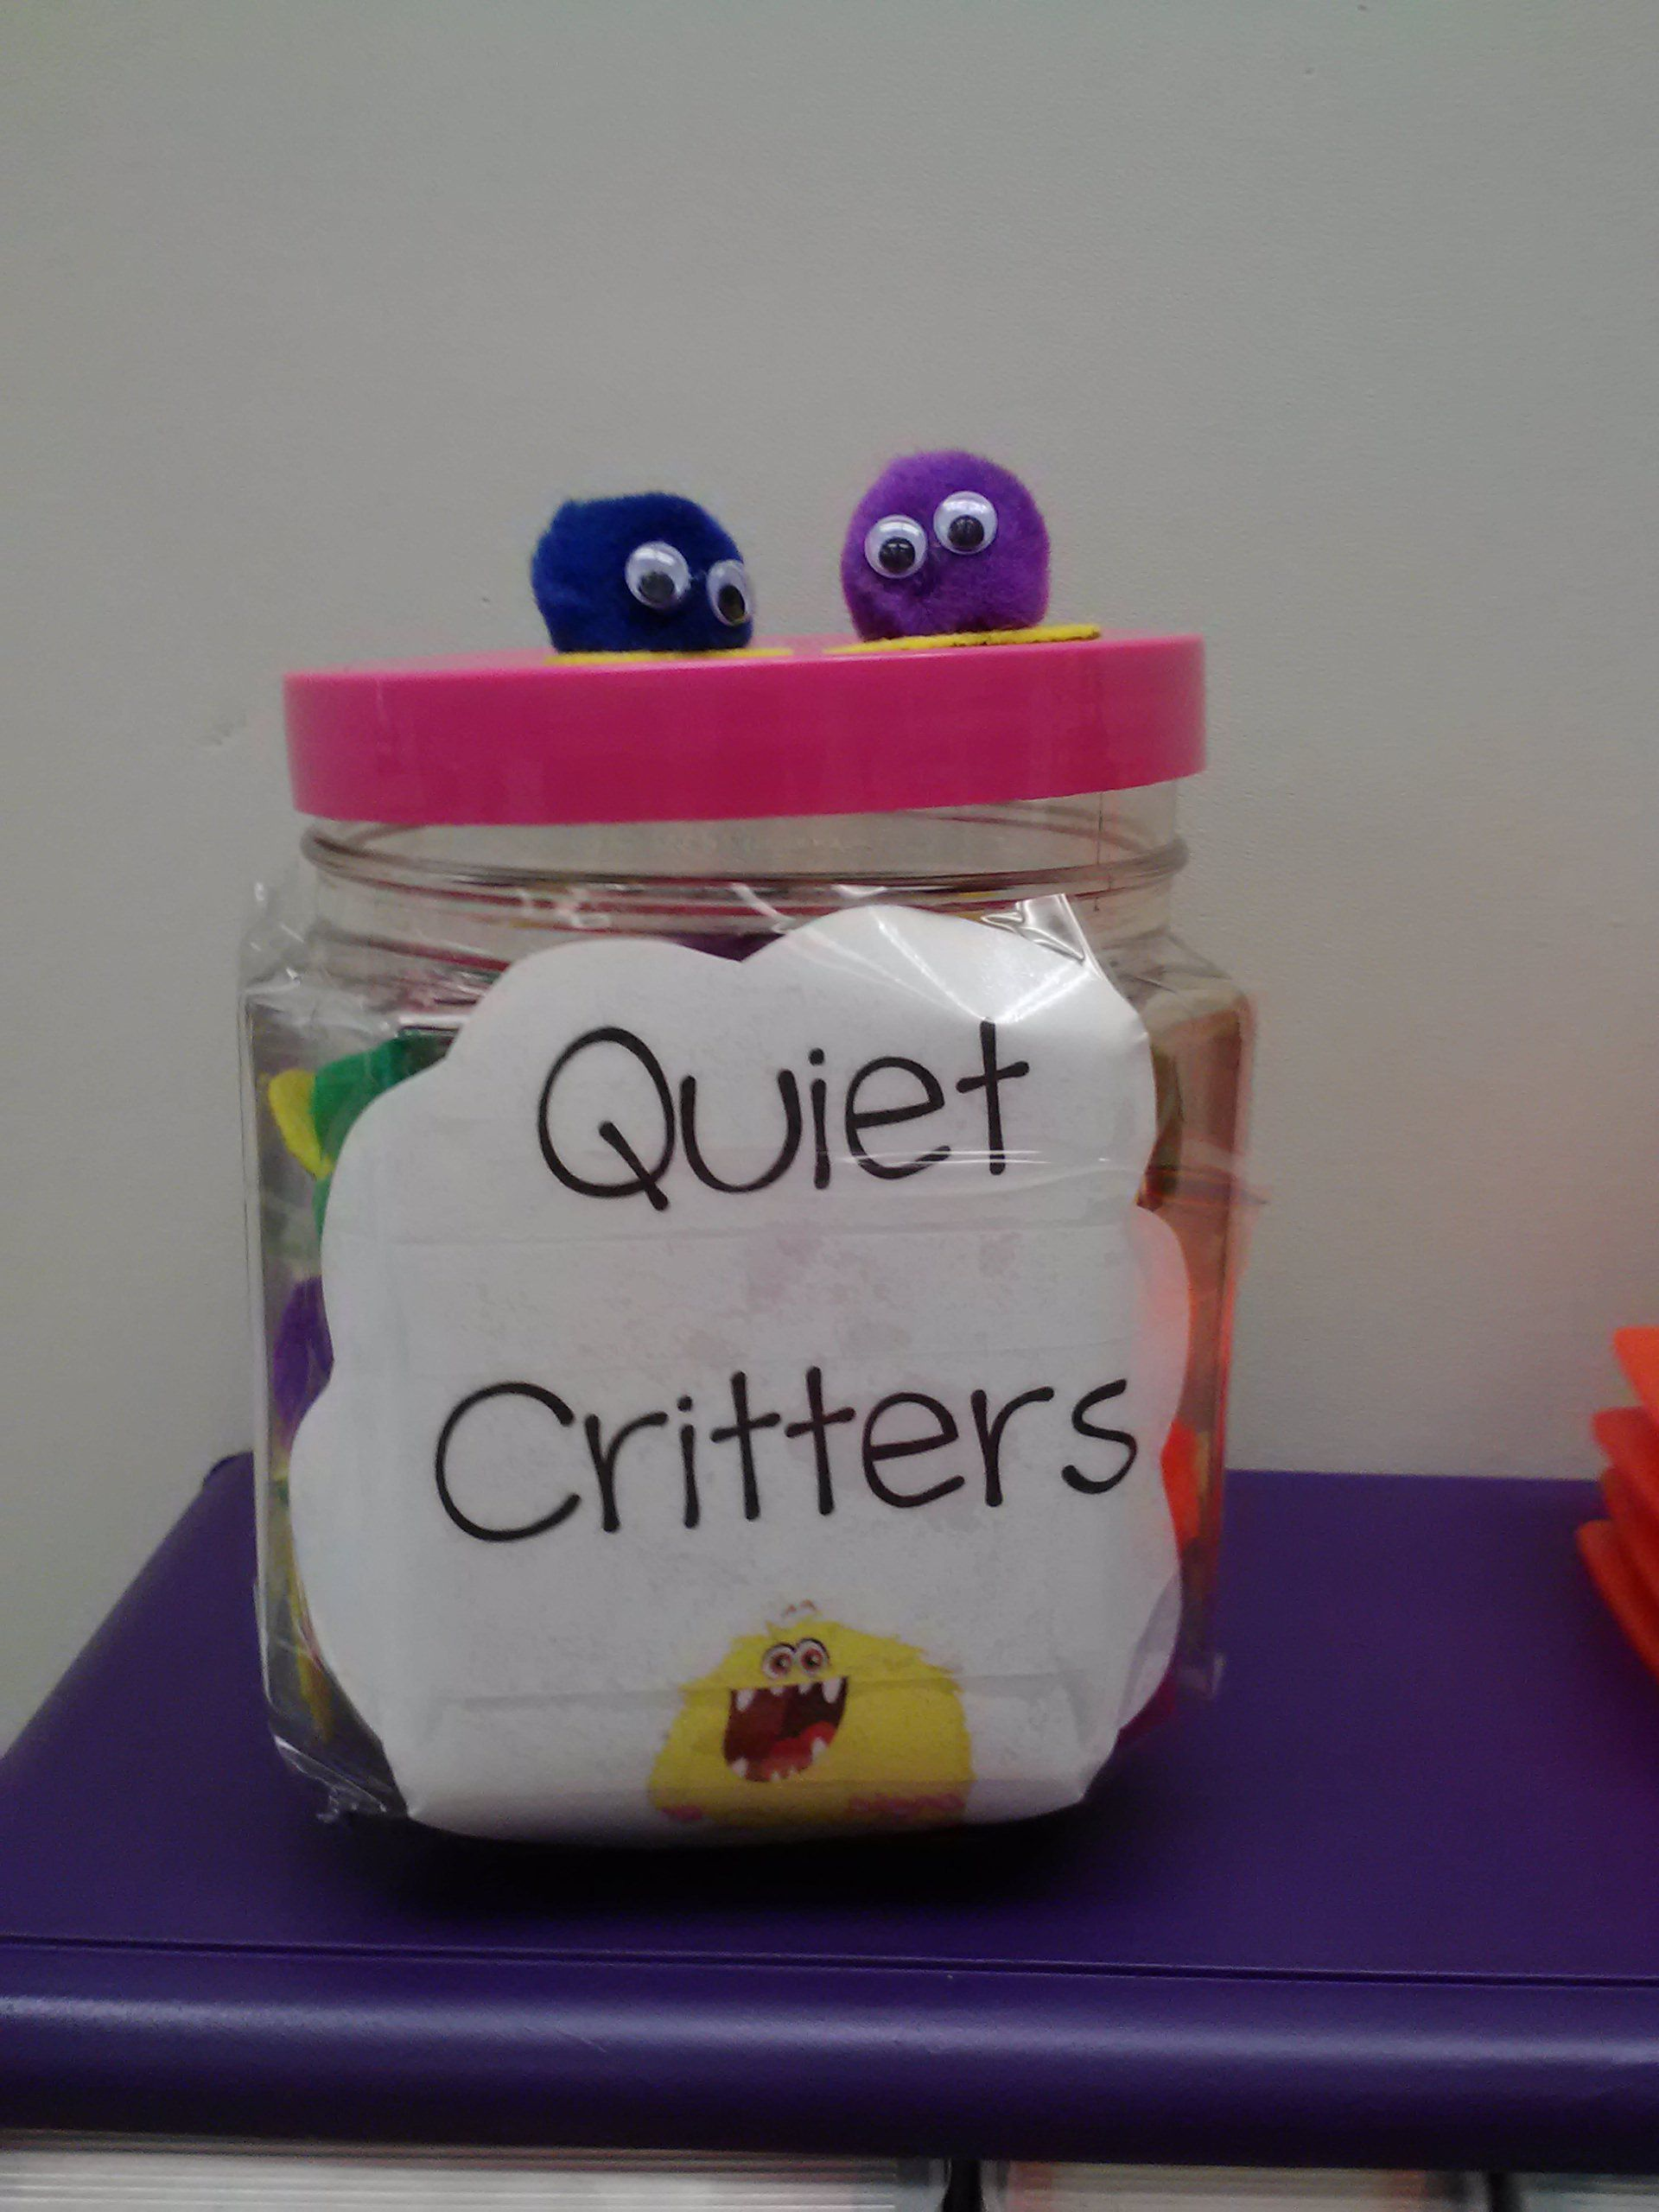 Quiet Critters: pompoms, googlie eyes, and felt feet. Works wonders in prompting quiet workers in the classroom! #quietcritters Quiet Critters: pompoms, googlie eyes, and felt feet. Works wonders in prompting quiet workers in the classroom! #quietcritters